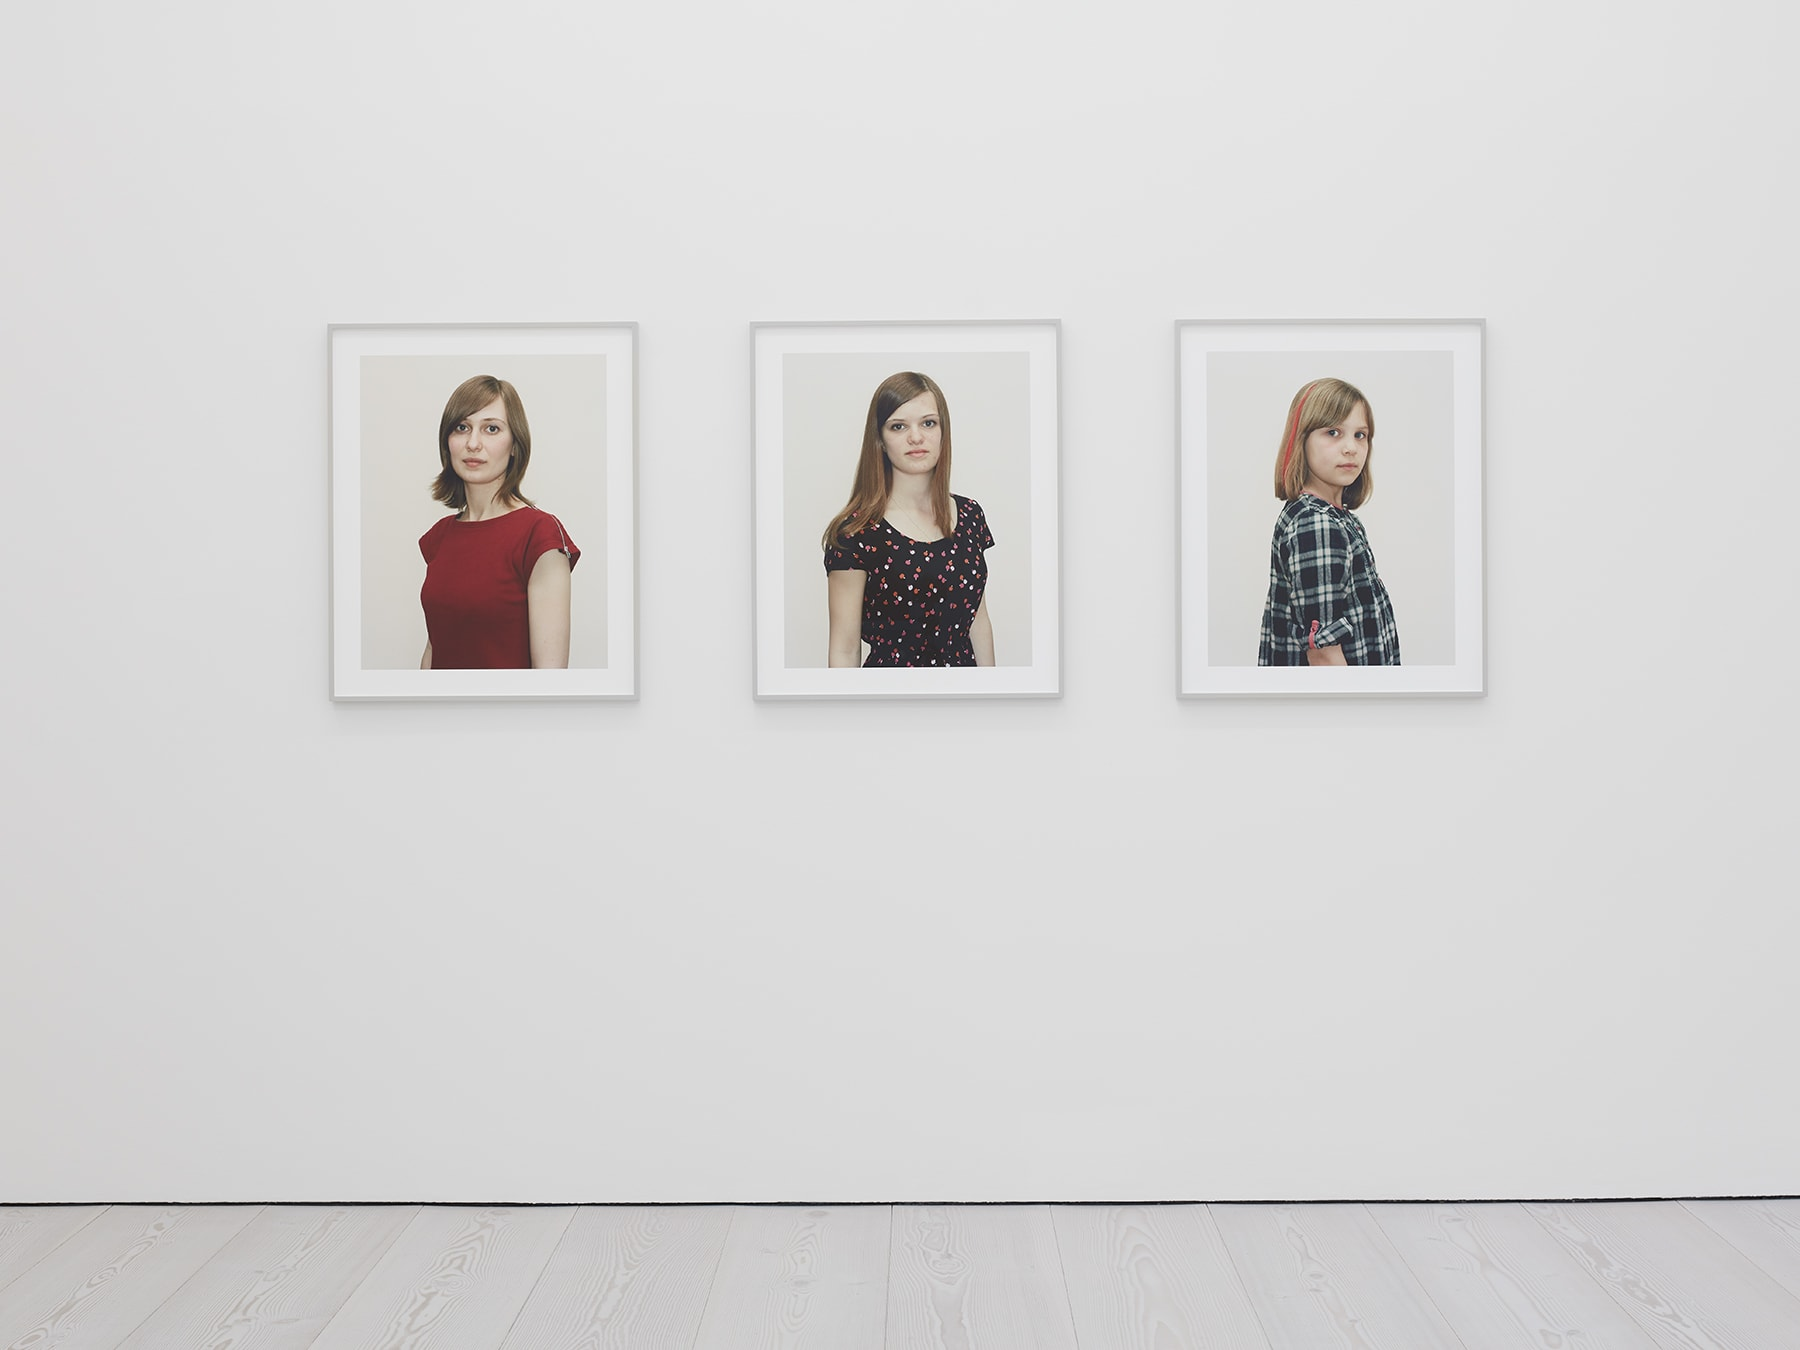 3 framed portraits in Rineke Dijkstra's exhibition at Marian Goodman Gallery, London, March 2020